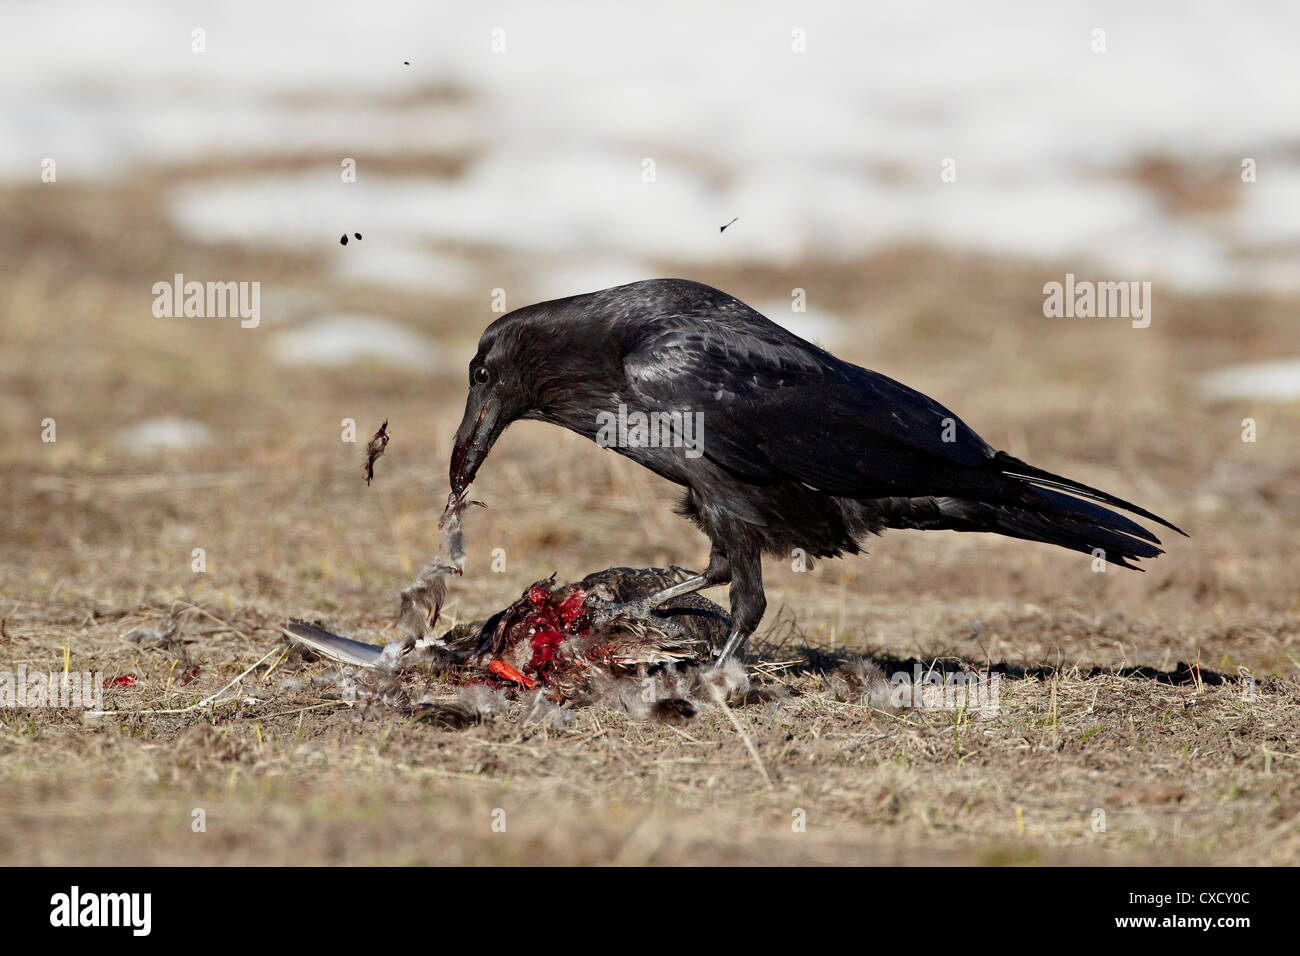 Common raven (Corvus corax) feeding on a duck, Yellowstone National Park, Wyoming, United States of America, North - Stock Image